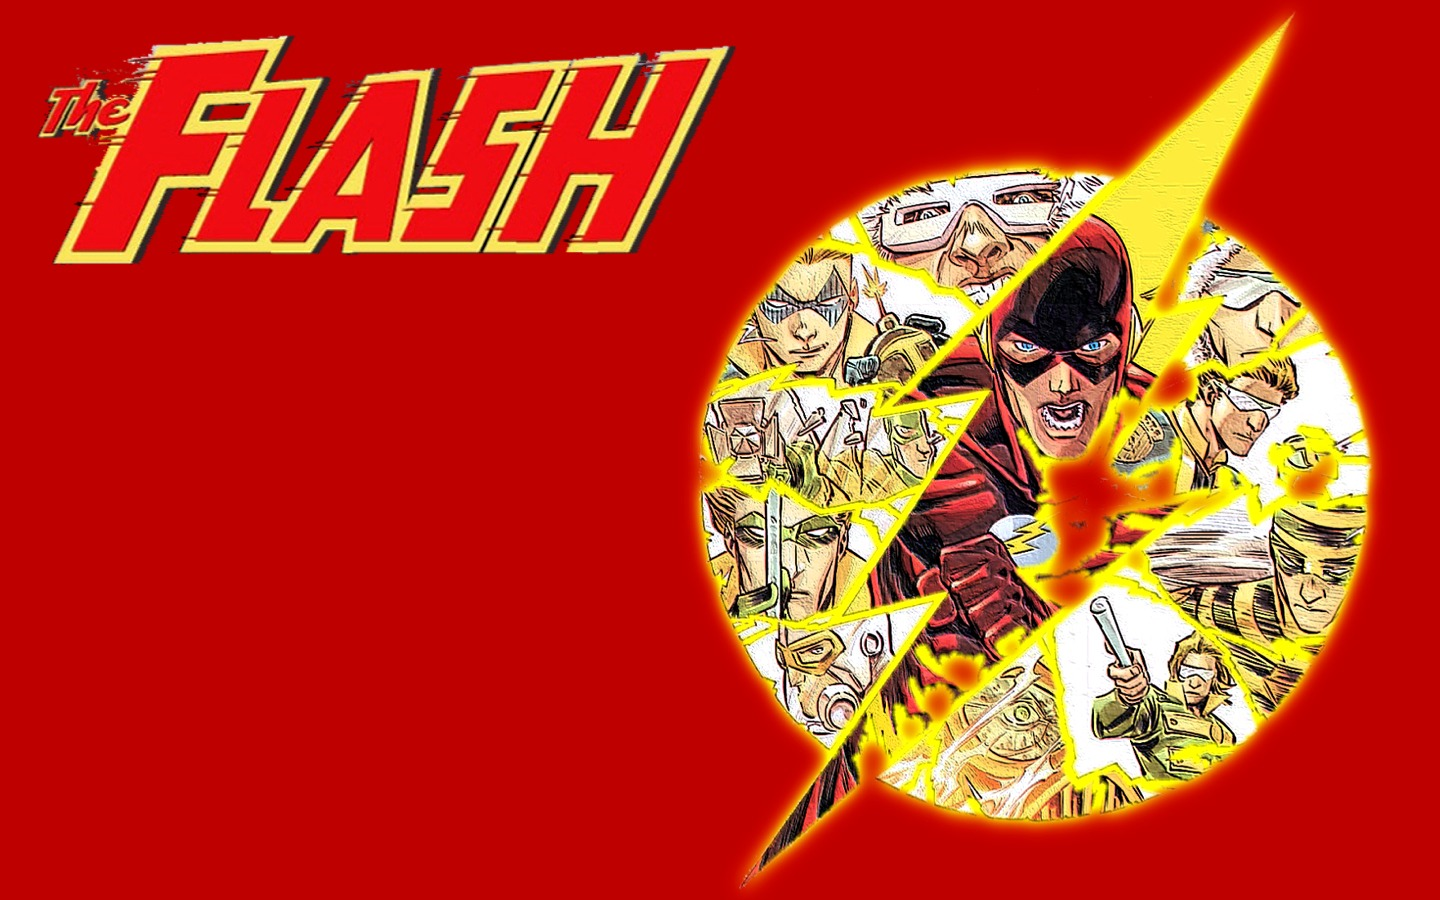 dc comics the flash simple background comic hero HD Wallpaper of 1440x900